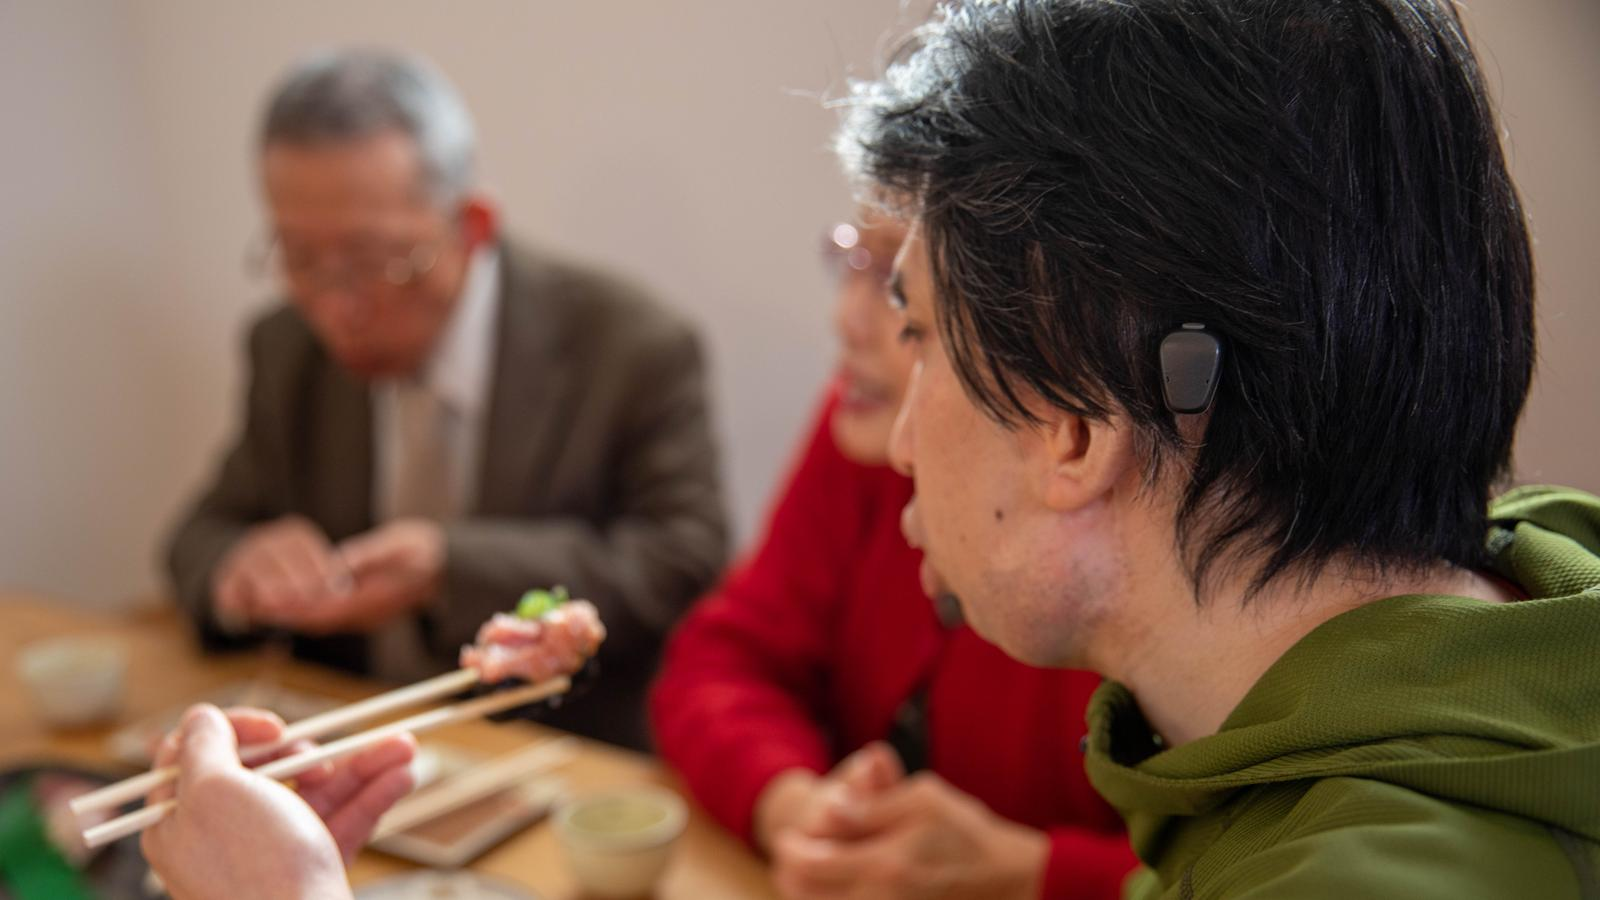 Cochlear recipient talks to a friend at a cafe